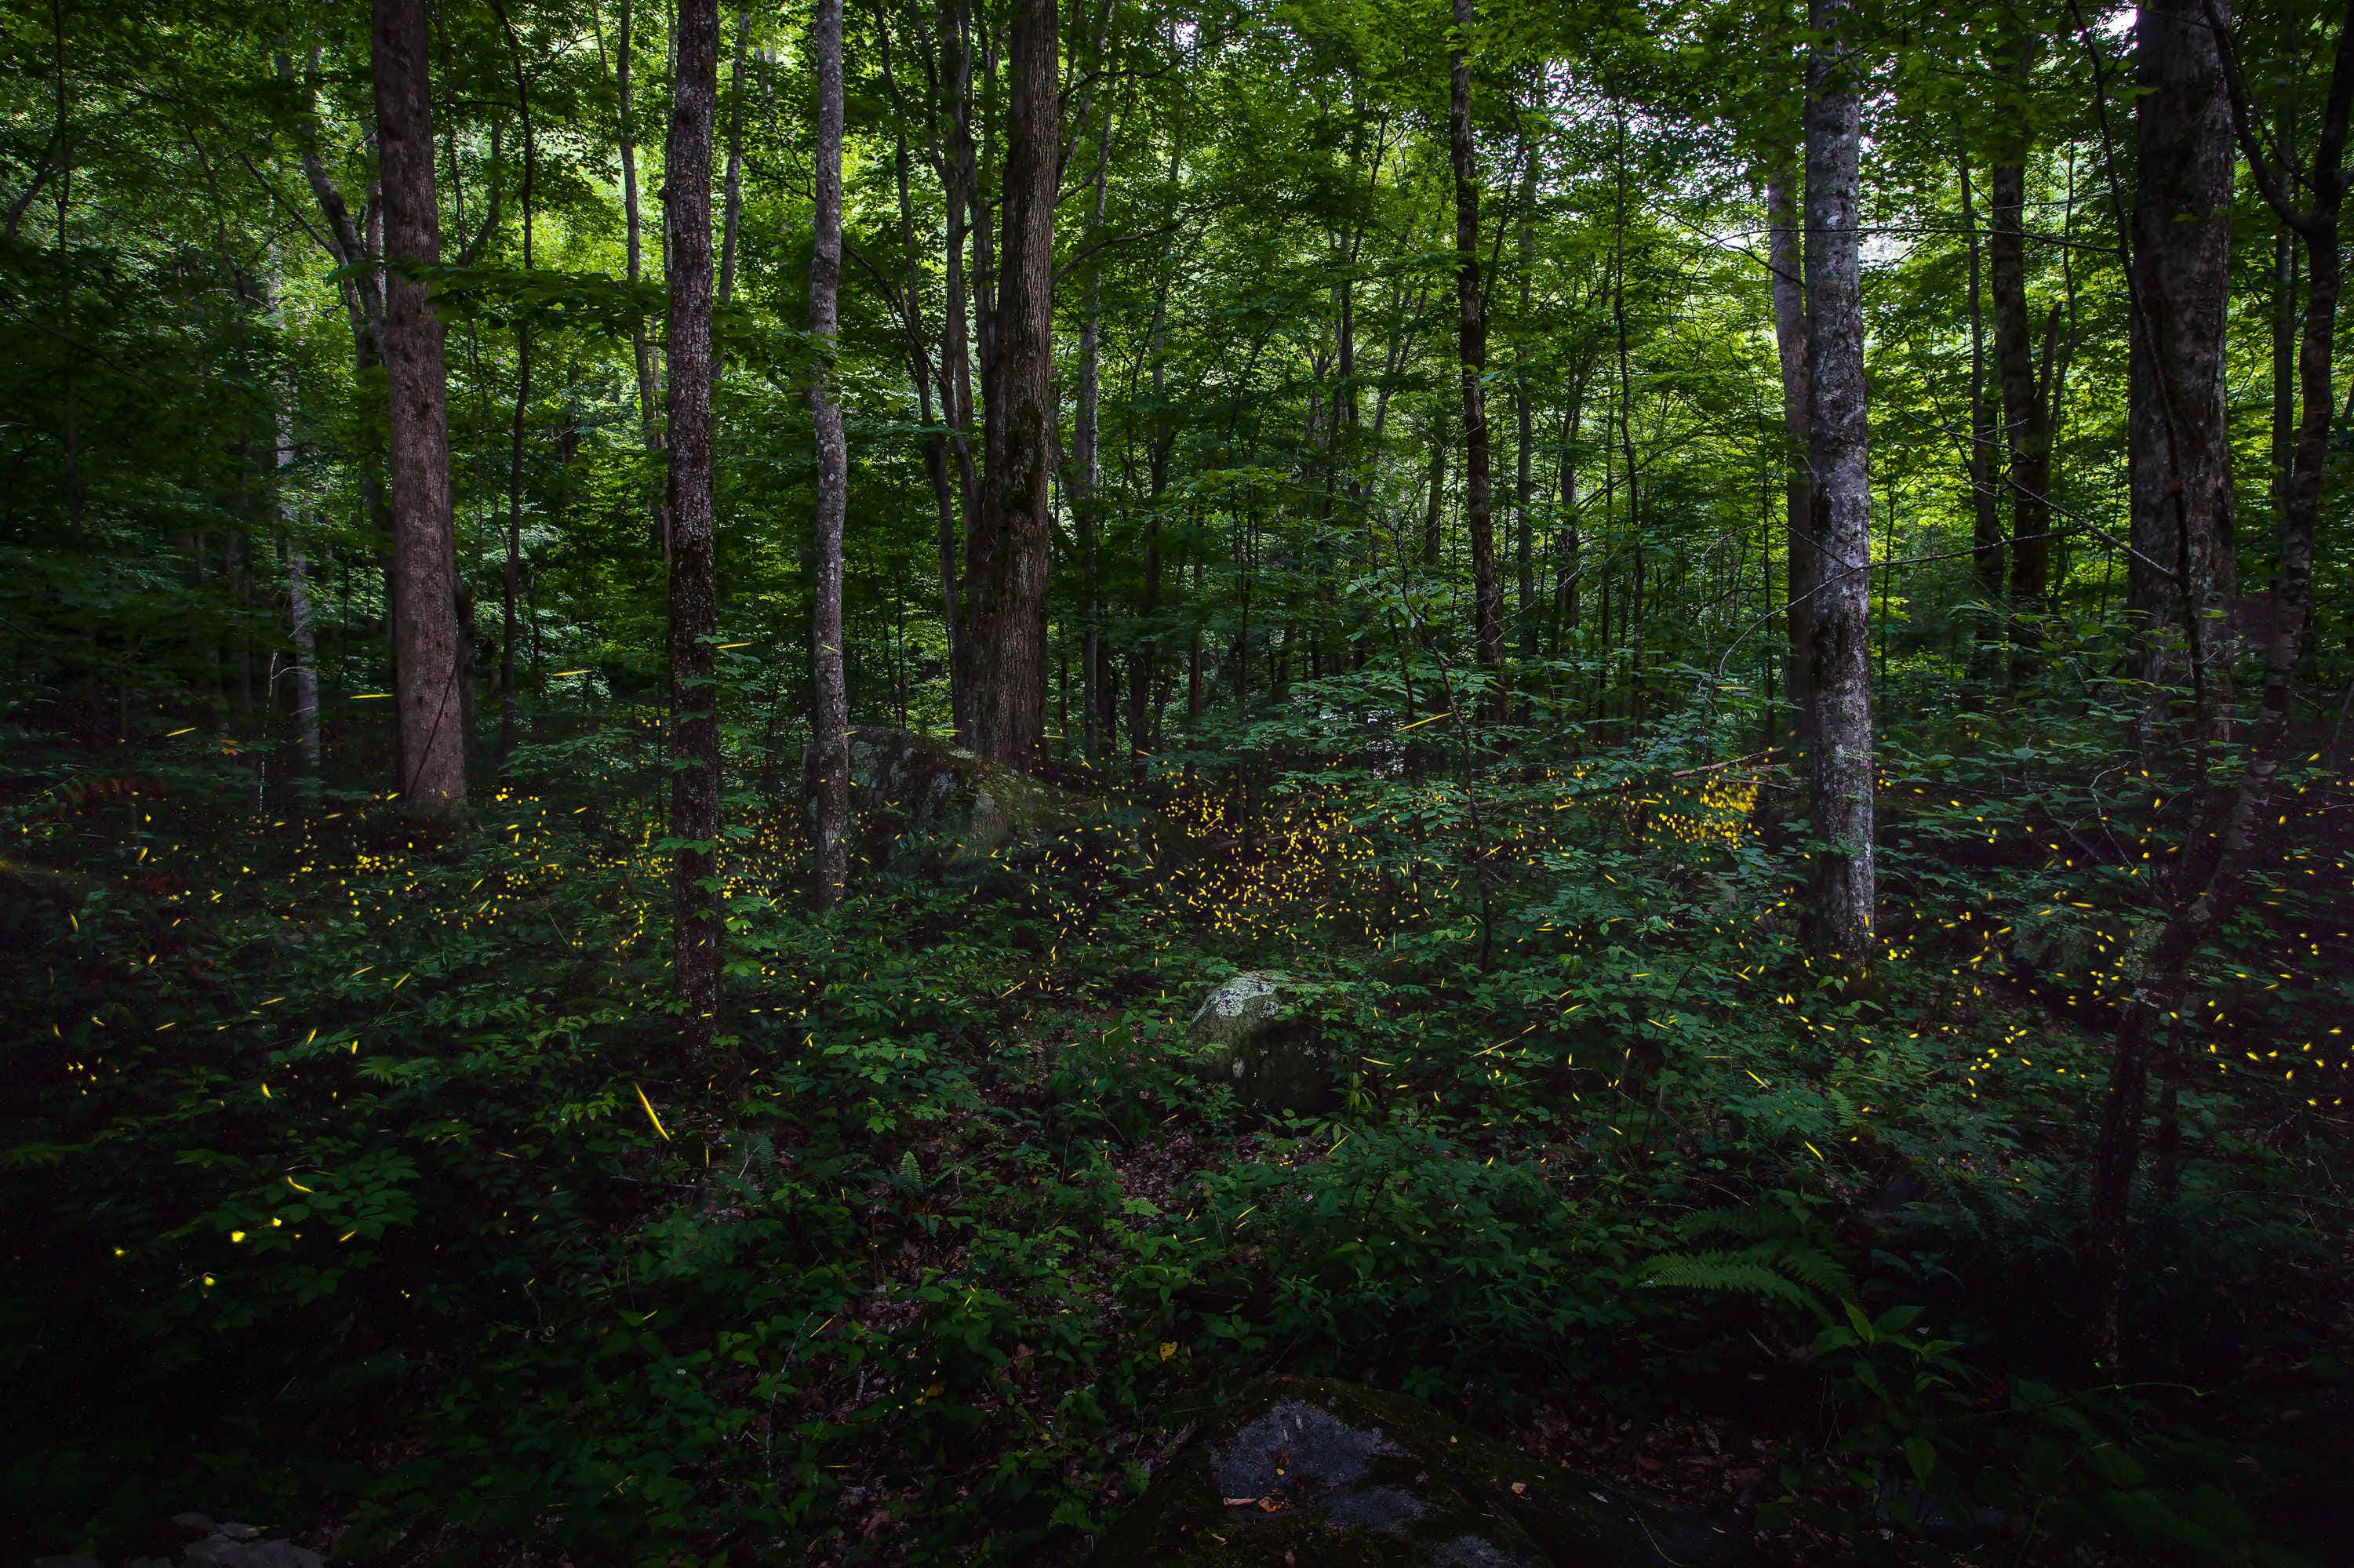 Here's how to see synchronous fireflies light up Great Smoky Mountains National Park